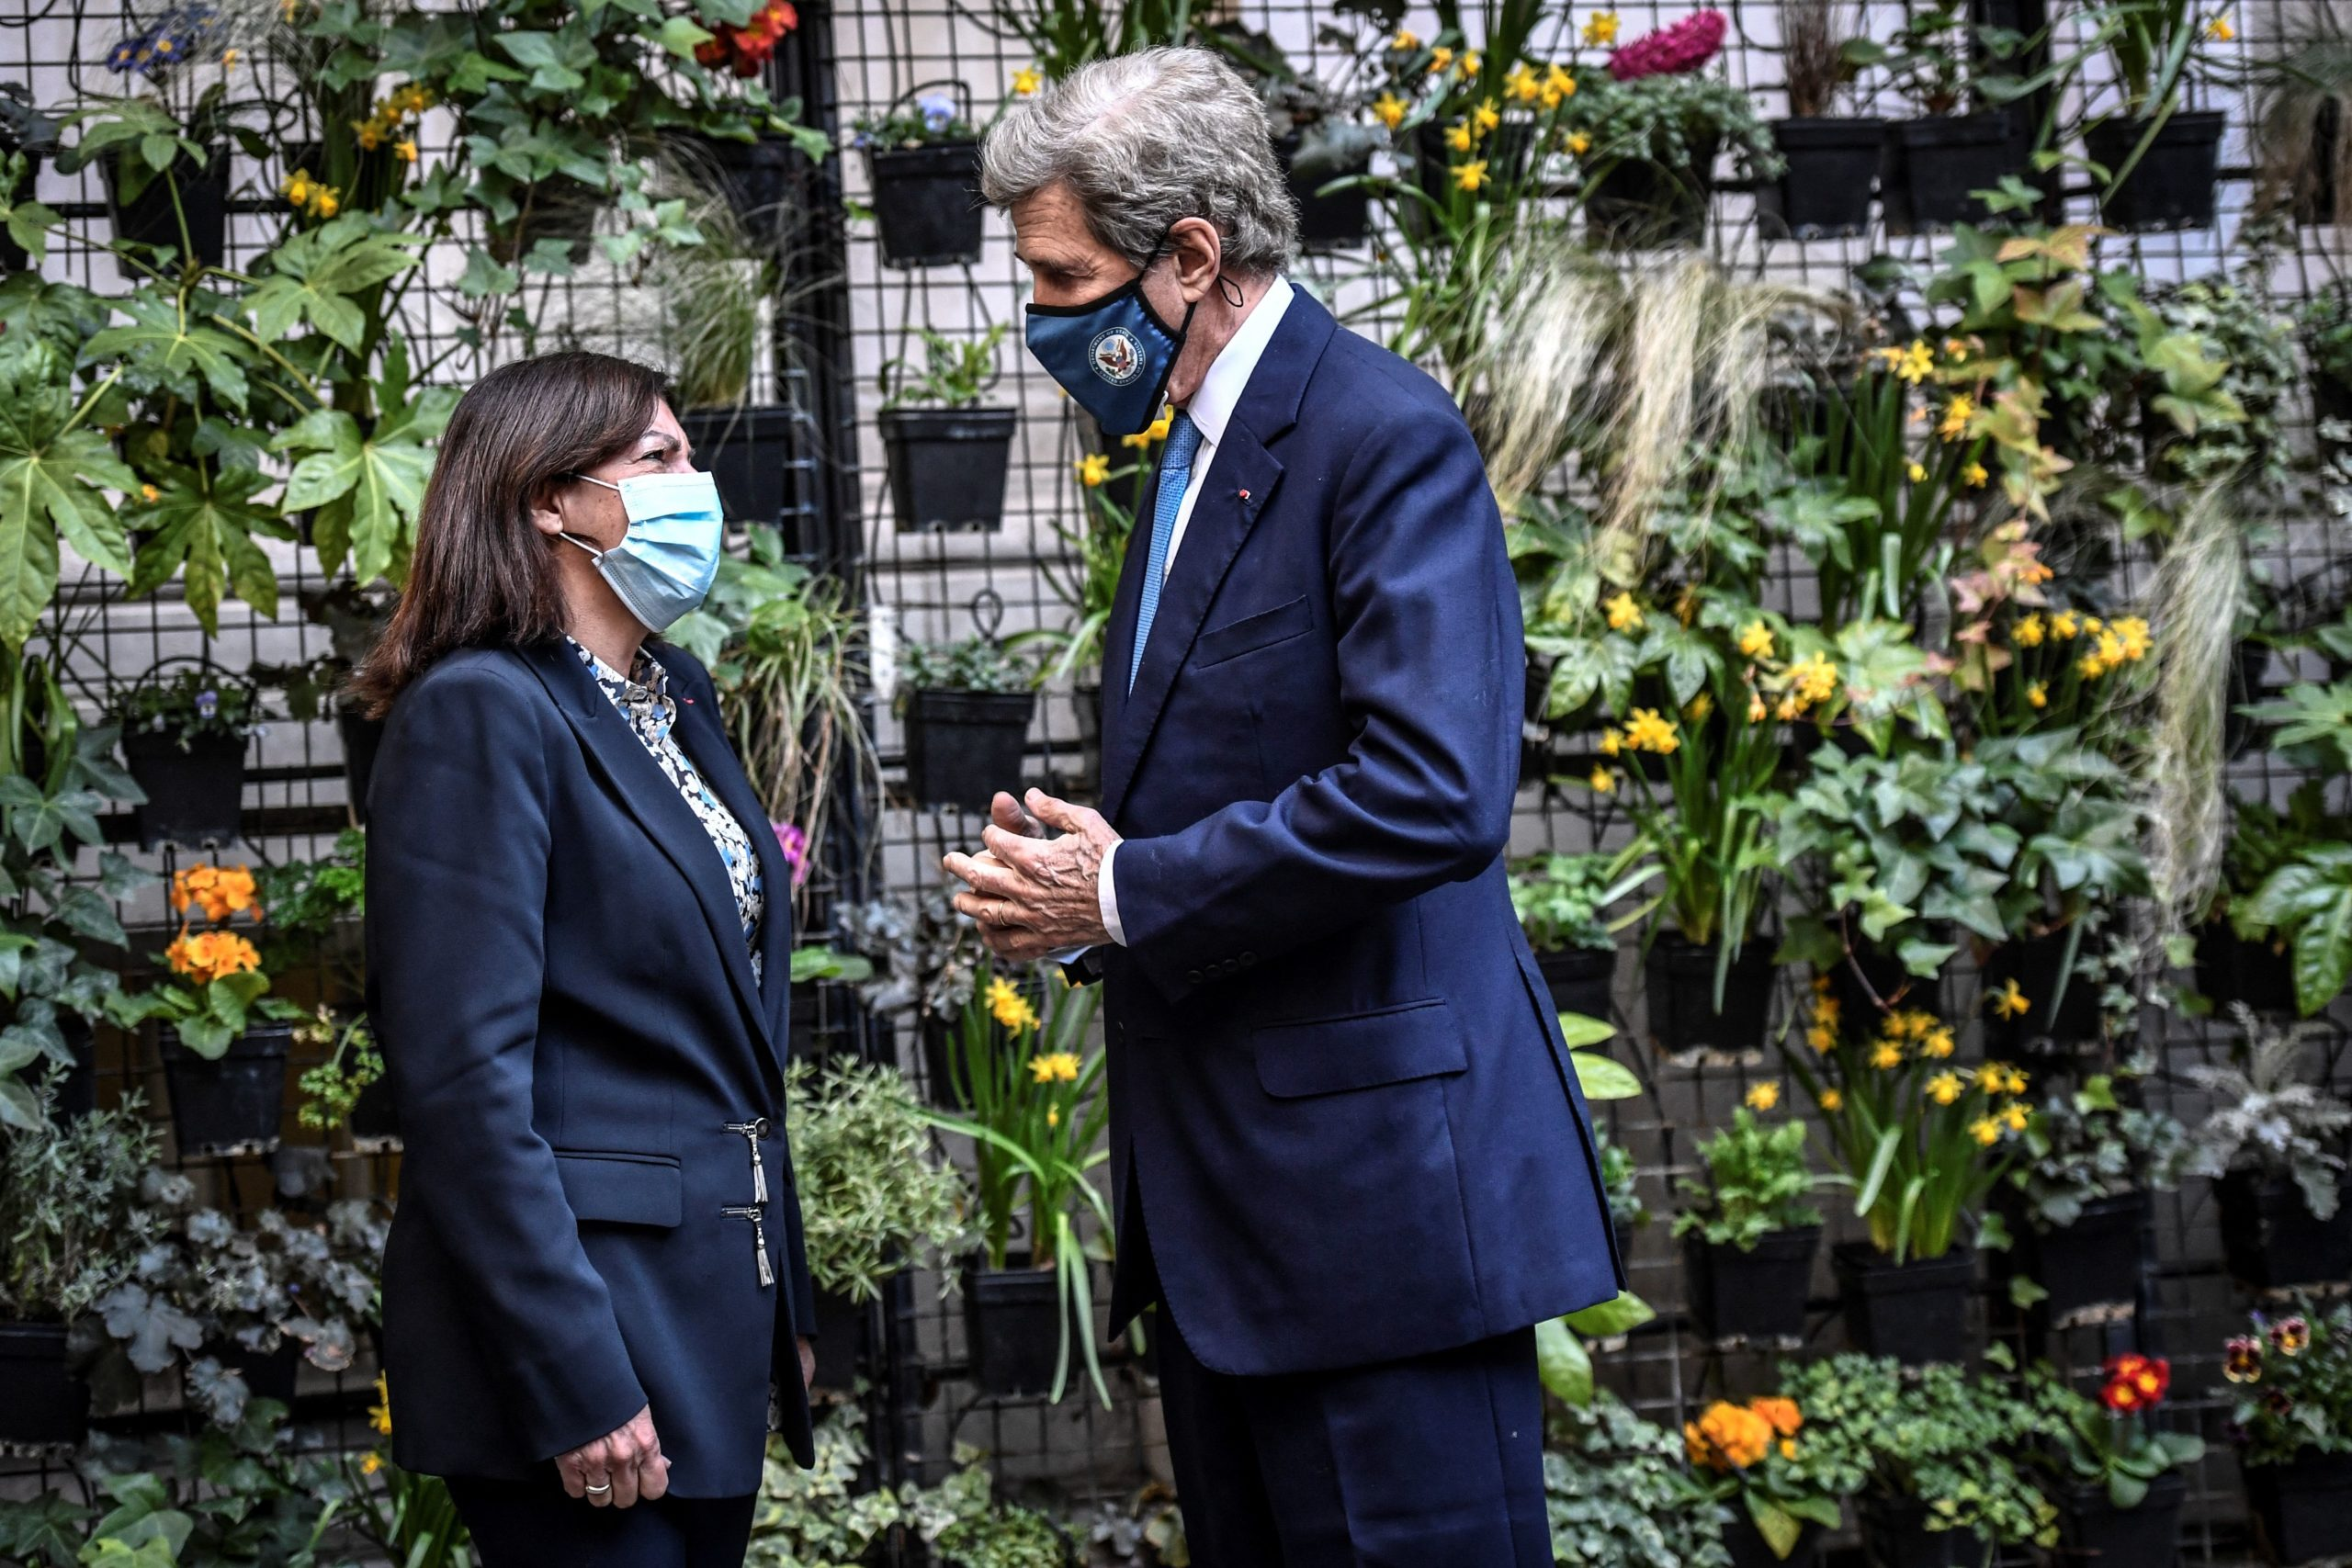 U.S. climate envoy John Kerry speaks withe the mayor of Paris prior to their meeting on March 12. (Stephane de Sakutin/AFP via Getty Images)